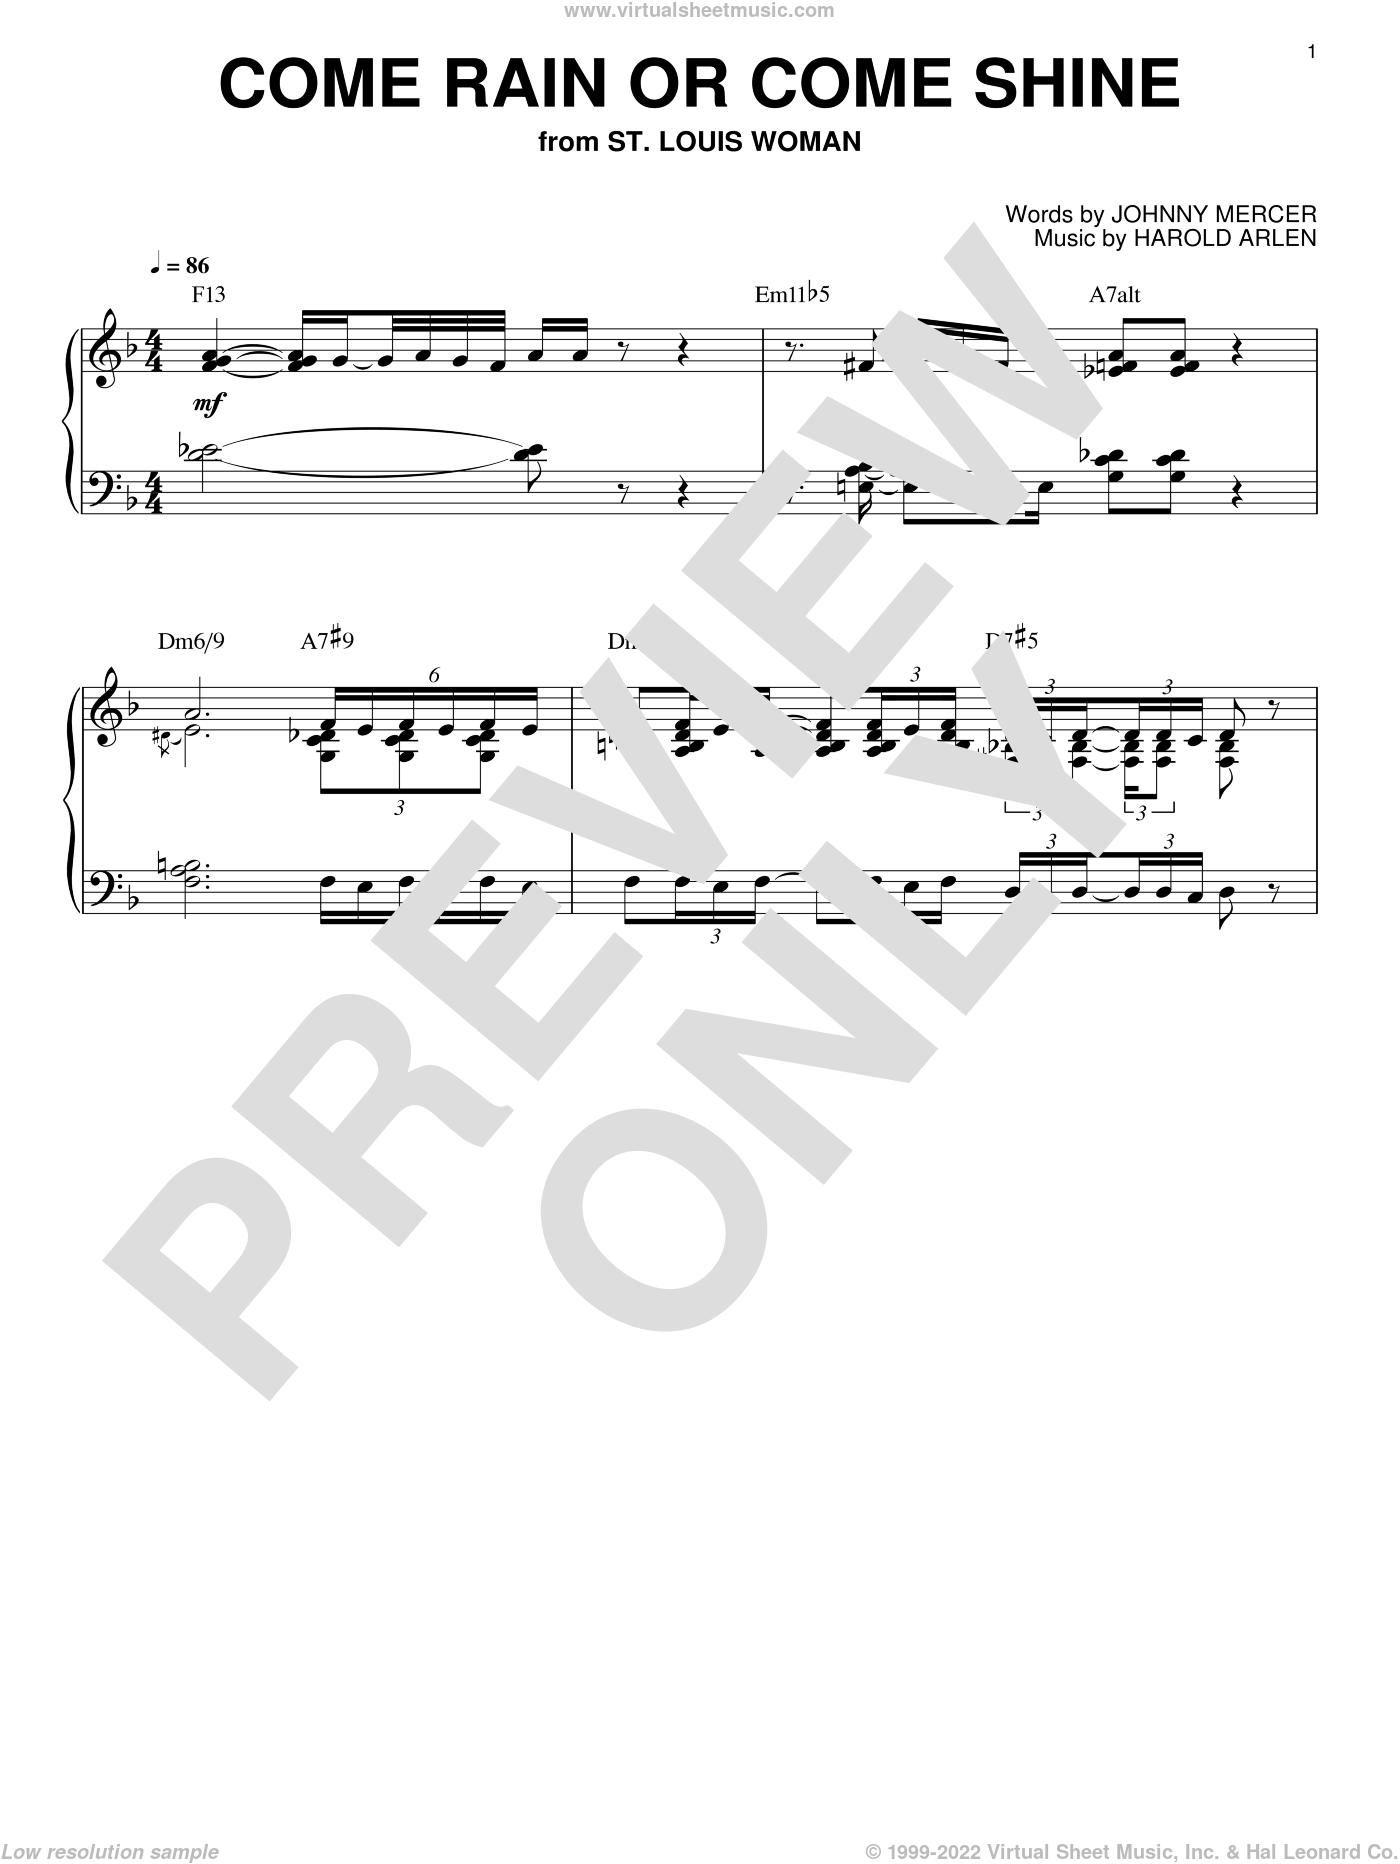 Come Rain Or Come Shine sheet music for piano solo by Bill Evans, Harold Arlen and Johnny Mercer, intermediate. Score Image Preview.